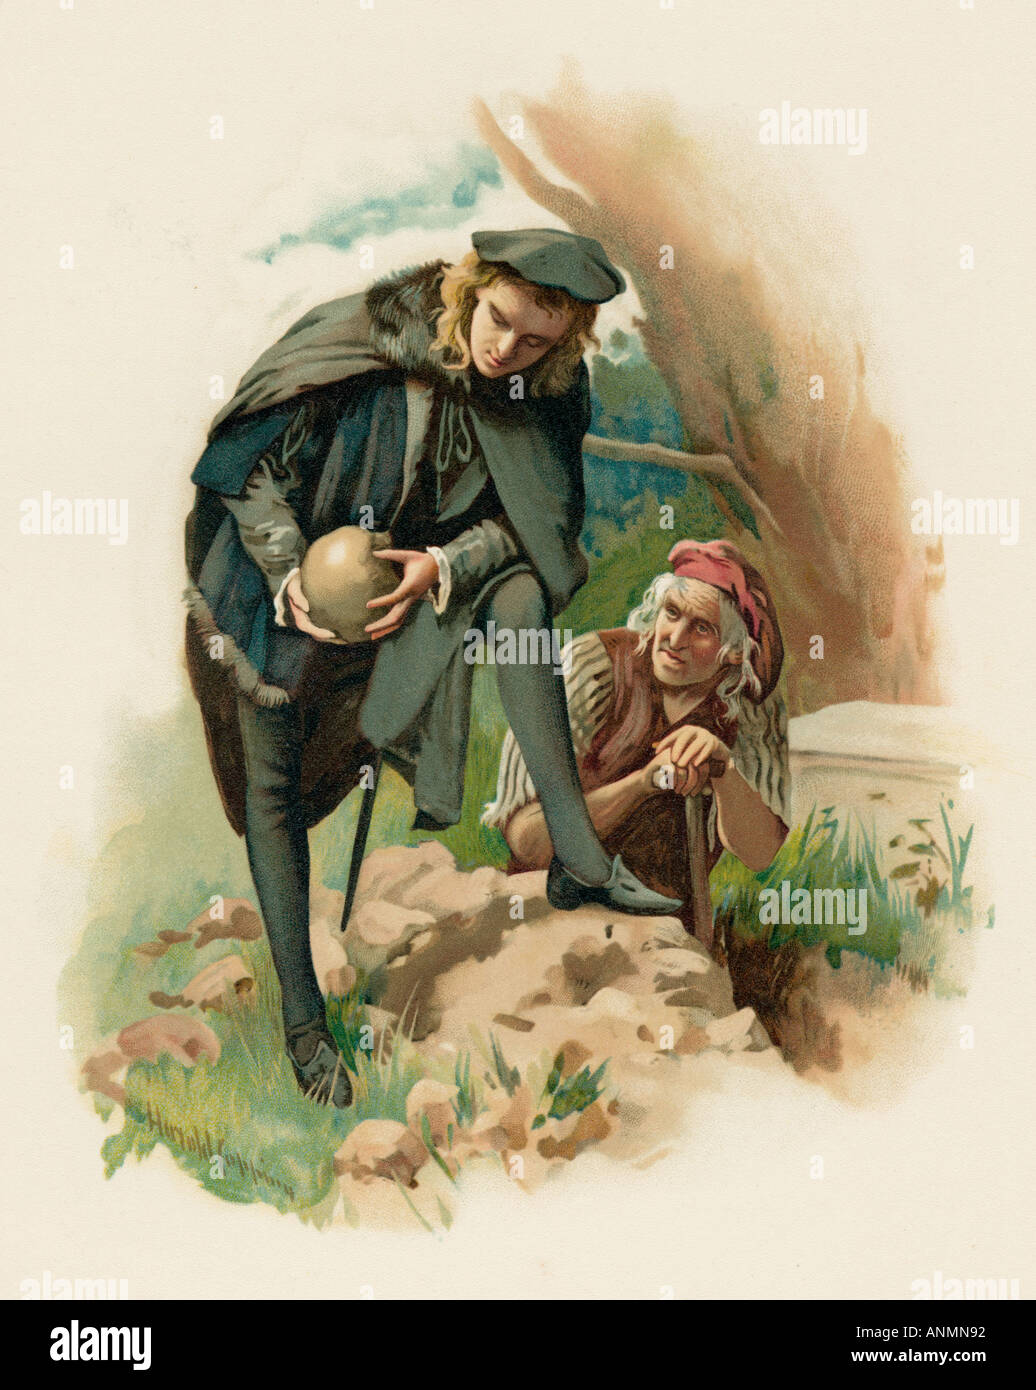 Hamlet At The Grave - Stock Image